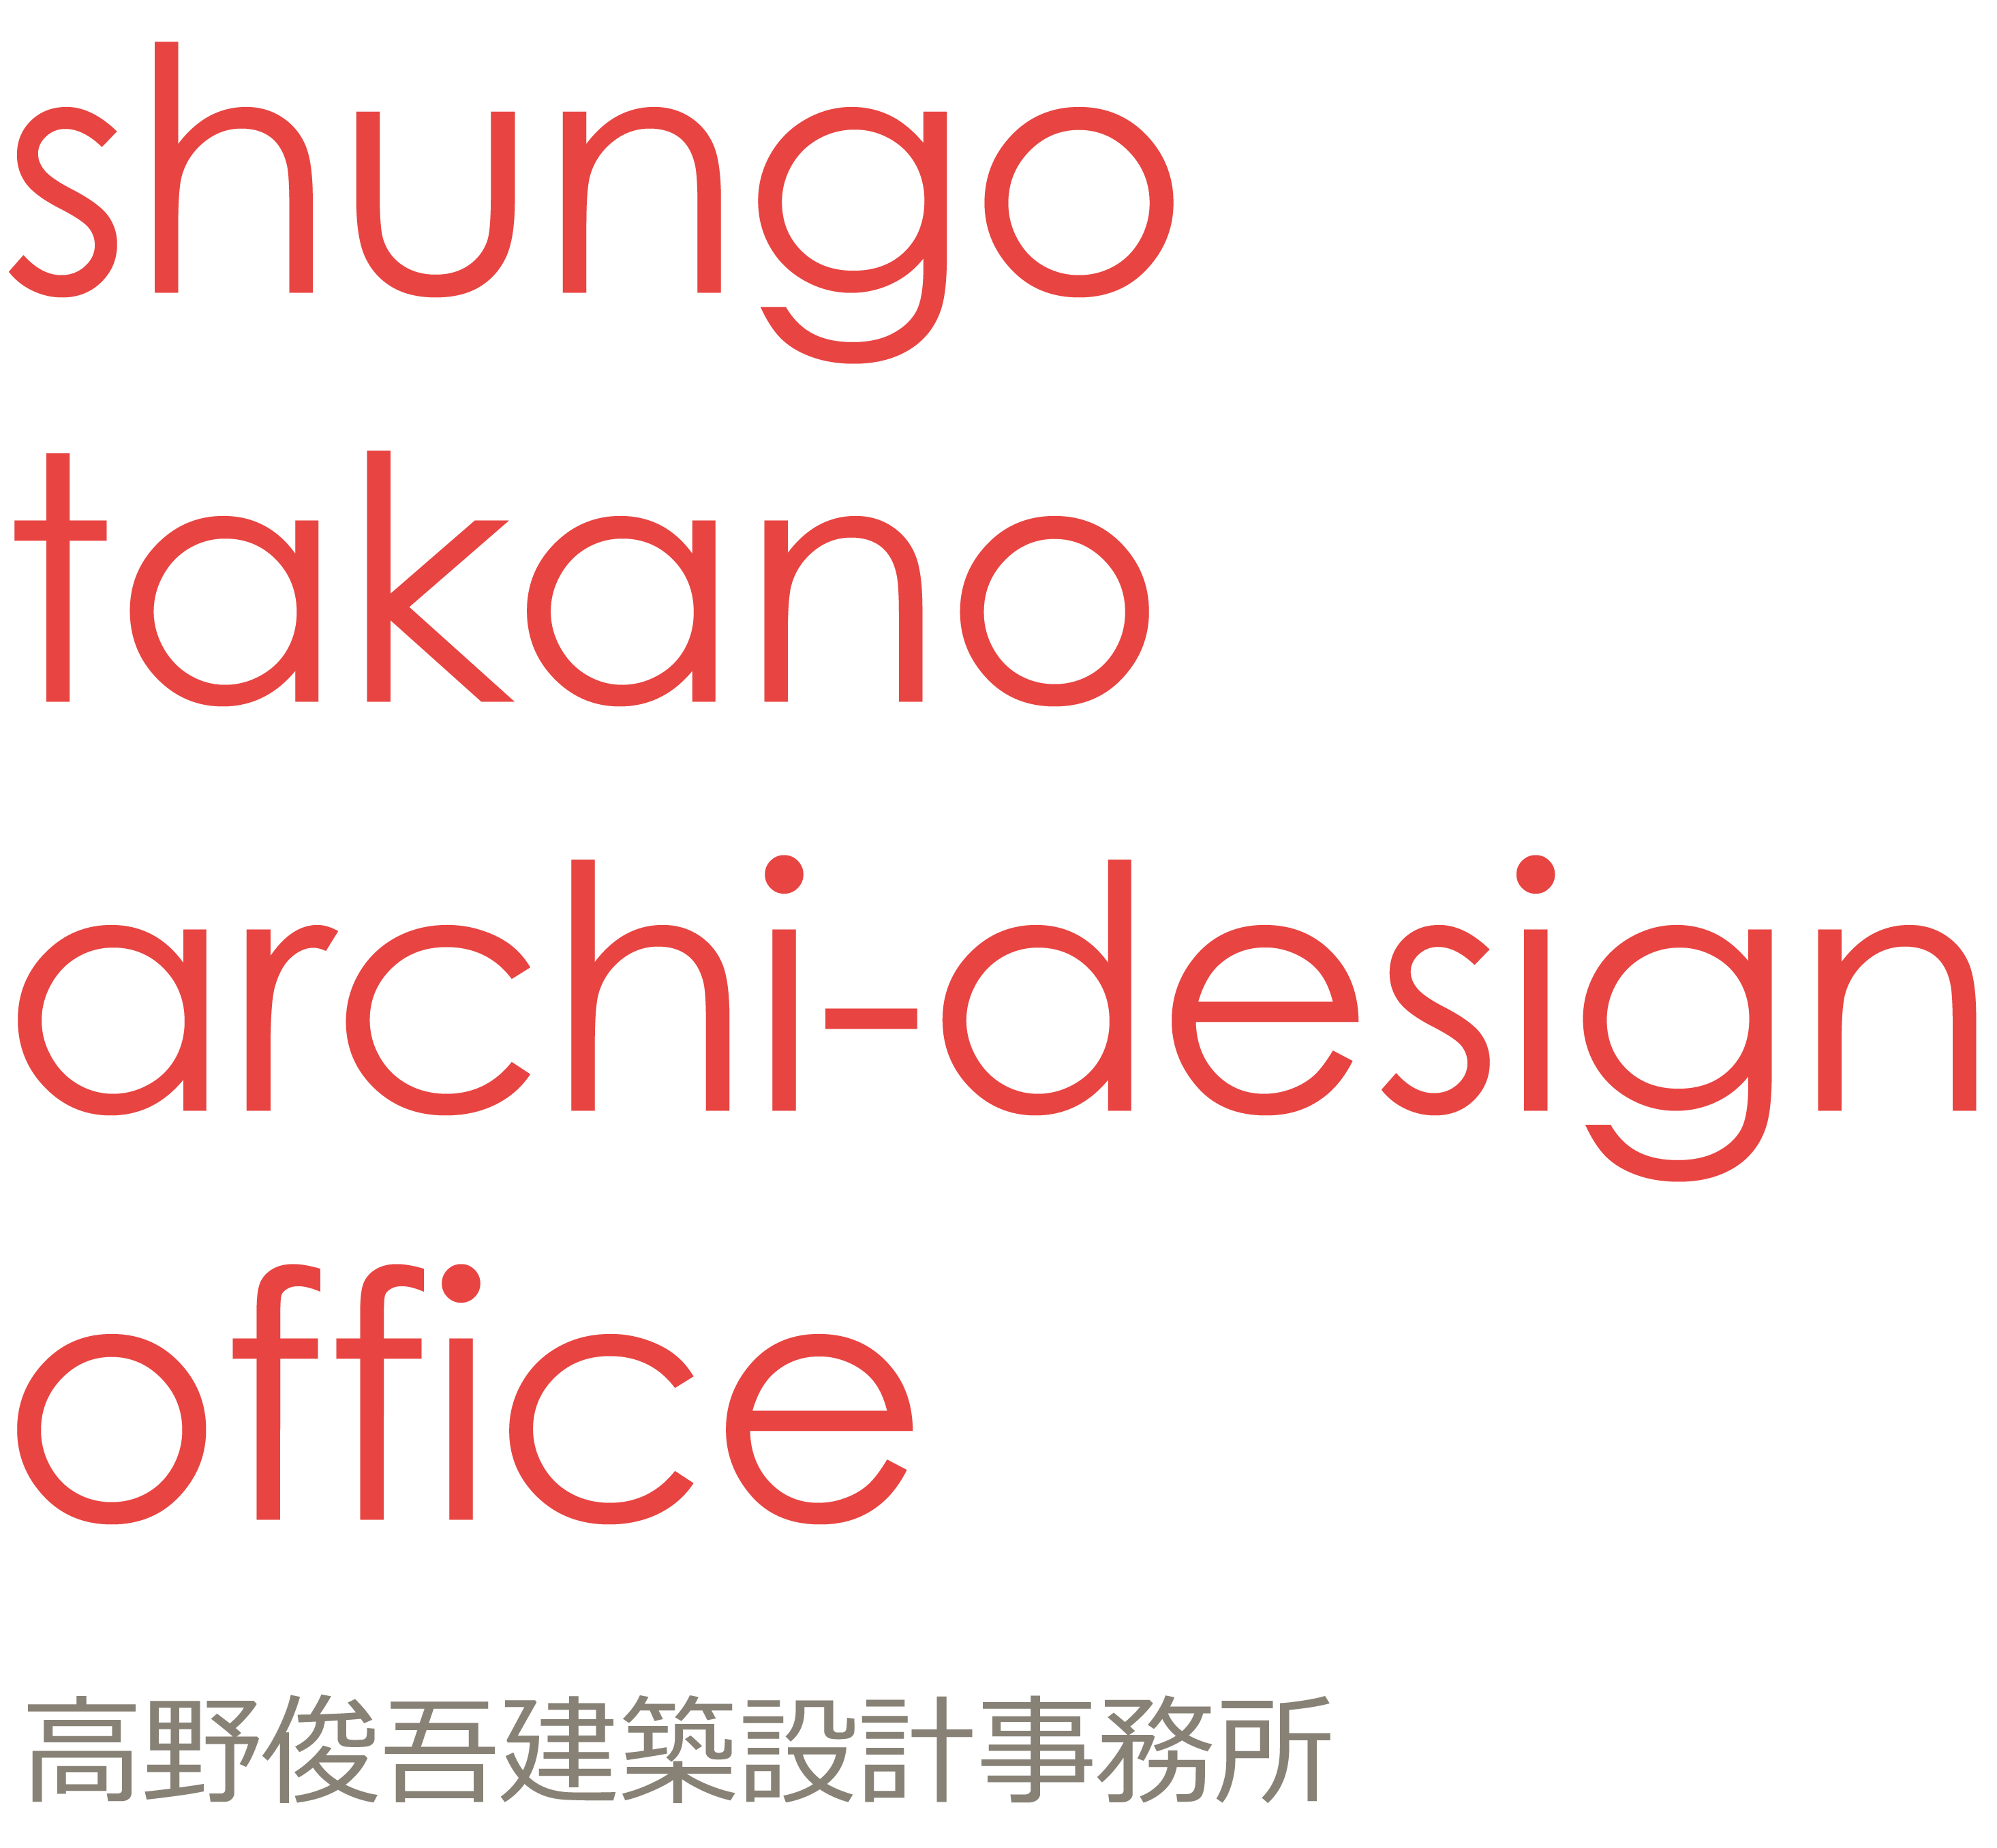 高野俊吾建築設計事務所 shungo takano archi-design office